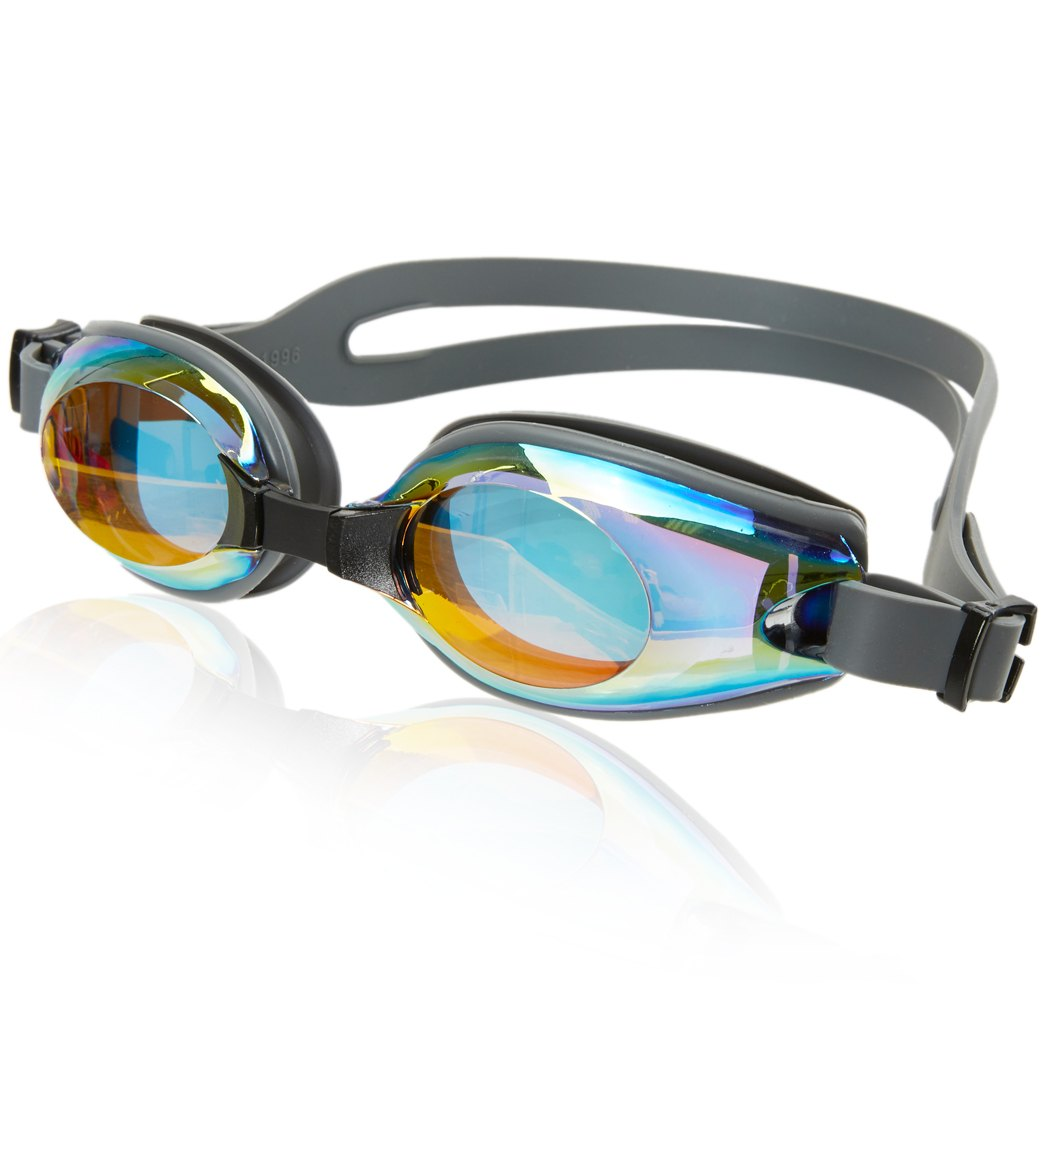 568d3c7748 Sporti Antifog Optical Pro II Mirrored Goggle at SwimOutlet.com